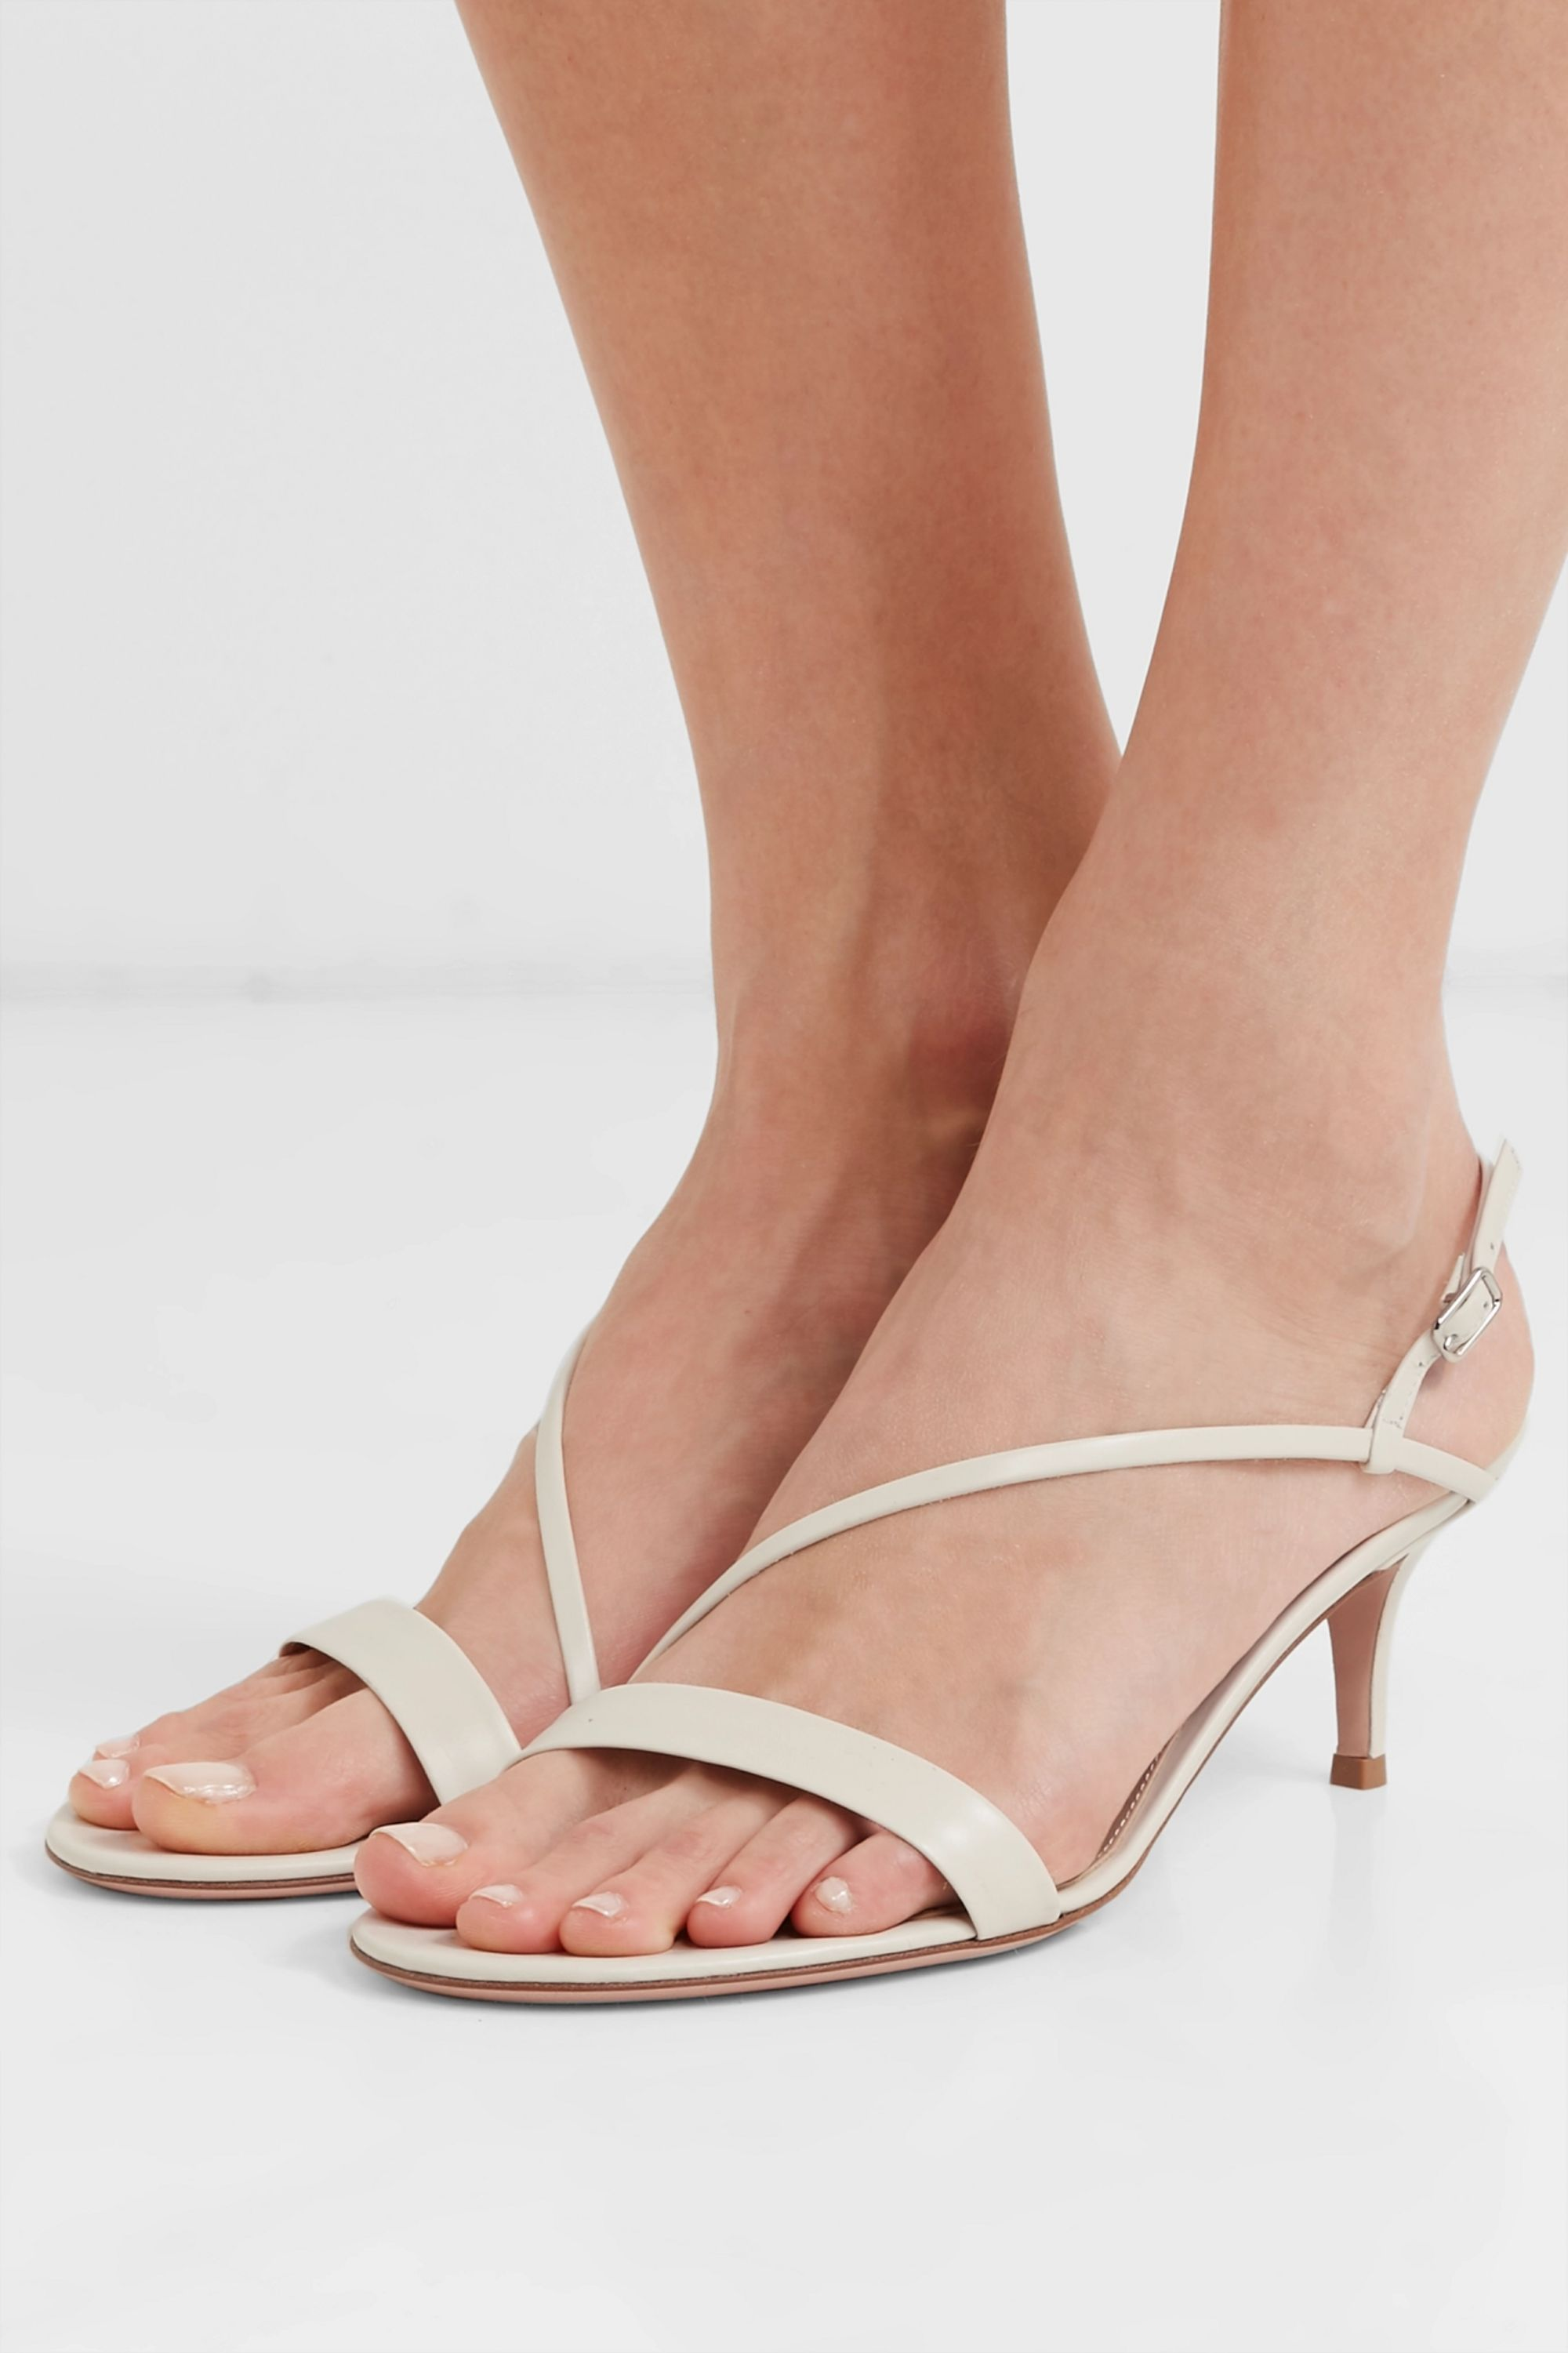 Off-white 55 leather slingback sandals